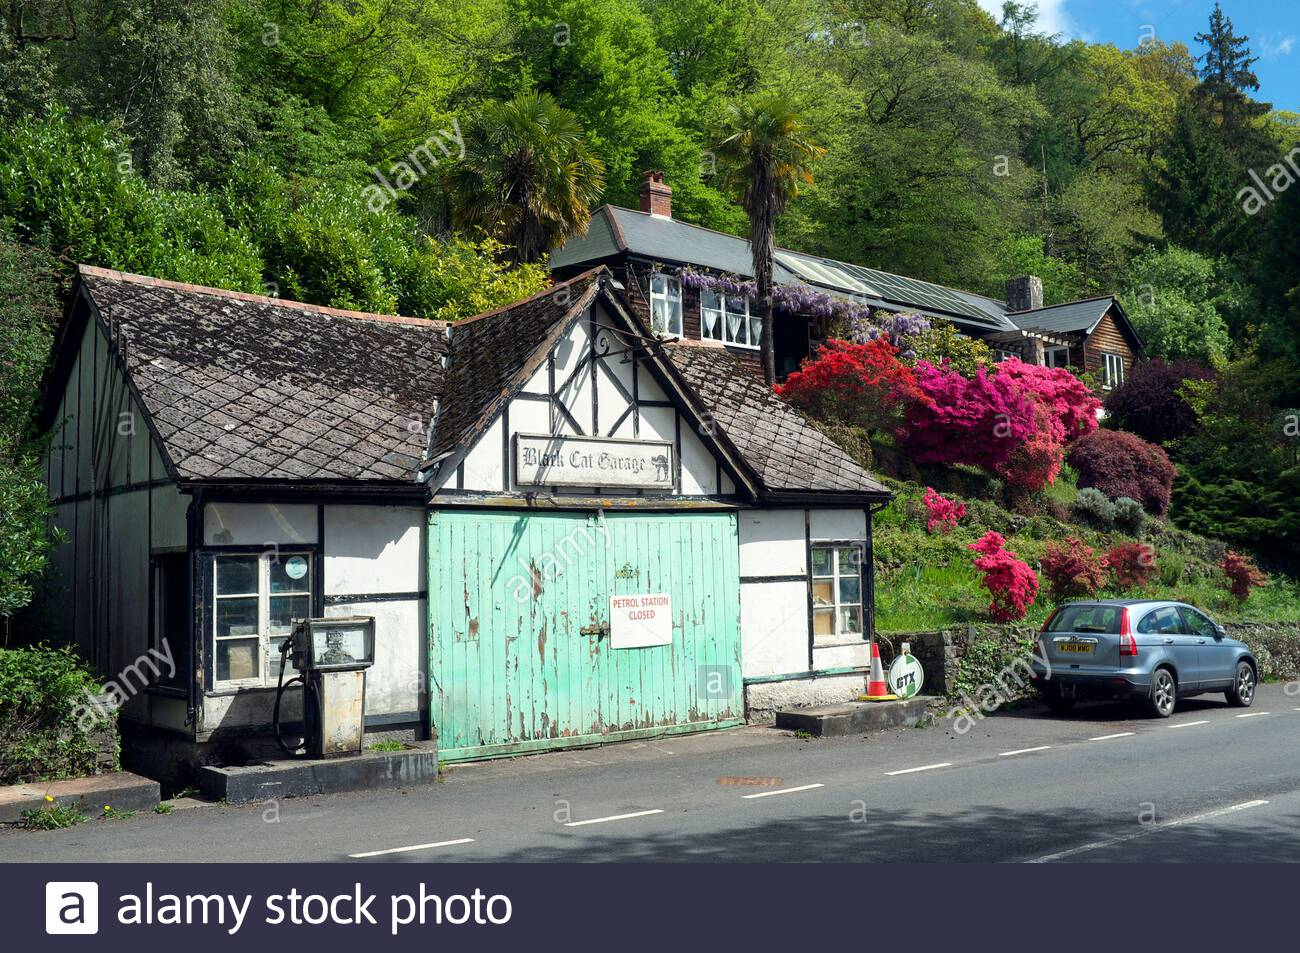 The closed down Black Cat Garage, and adjacent occupied residential property, on the A396 road in mid-Devon, south west England, UK. Stock Photo